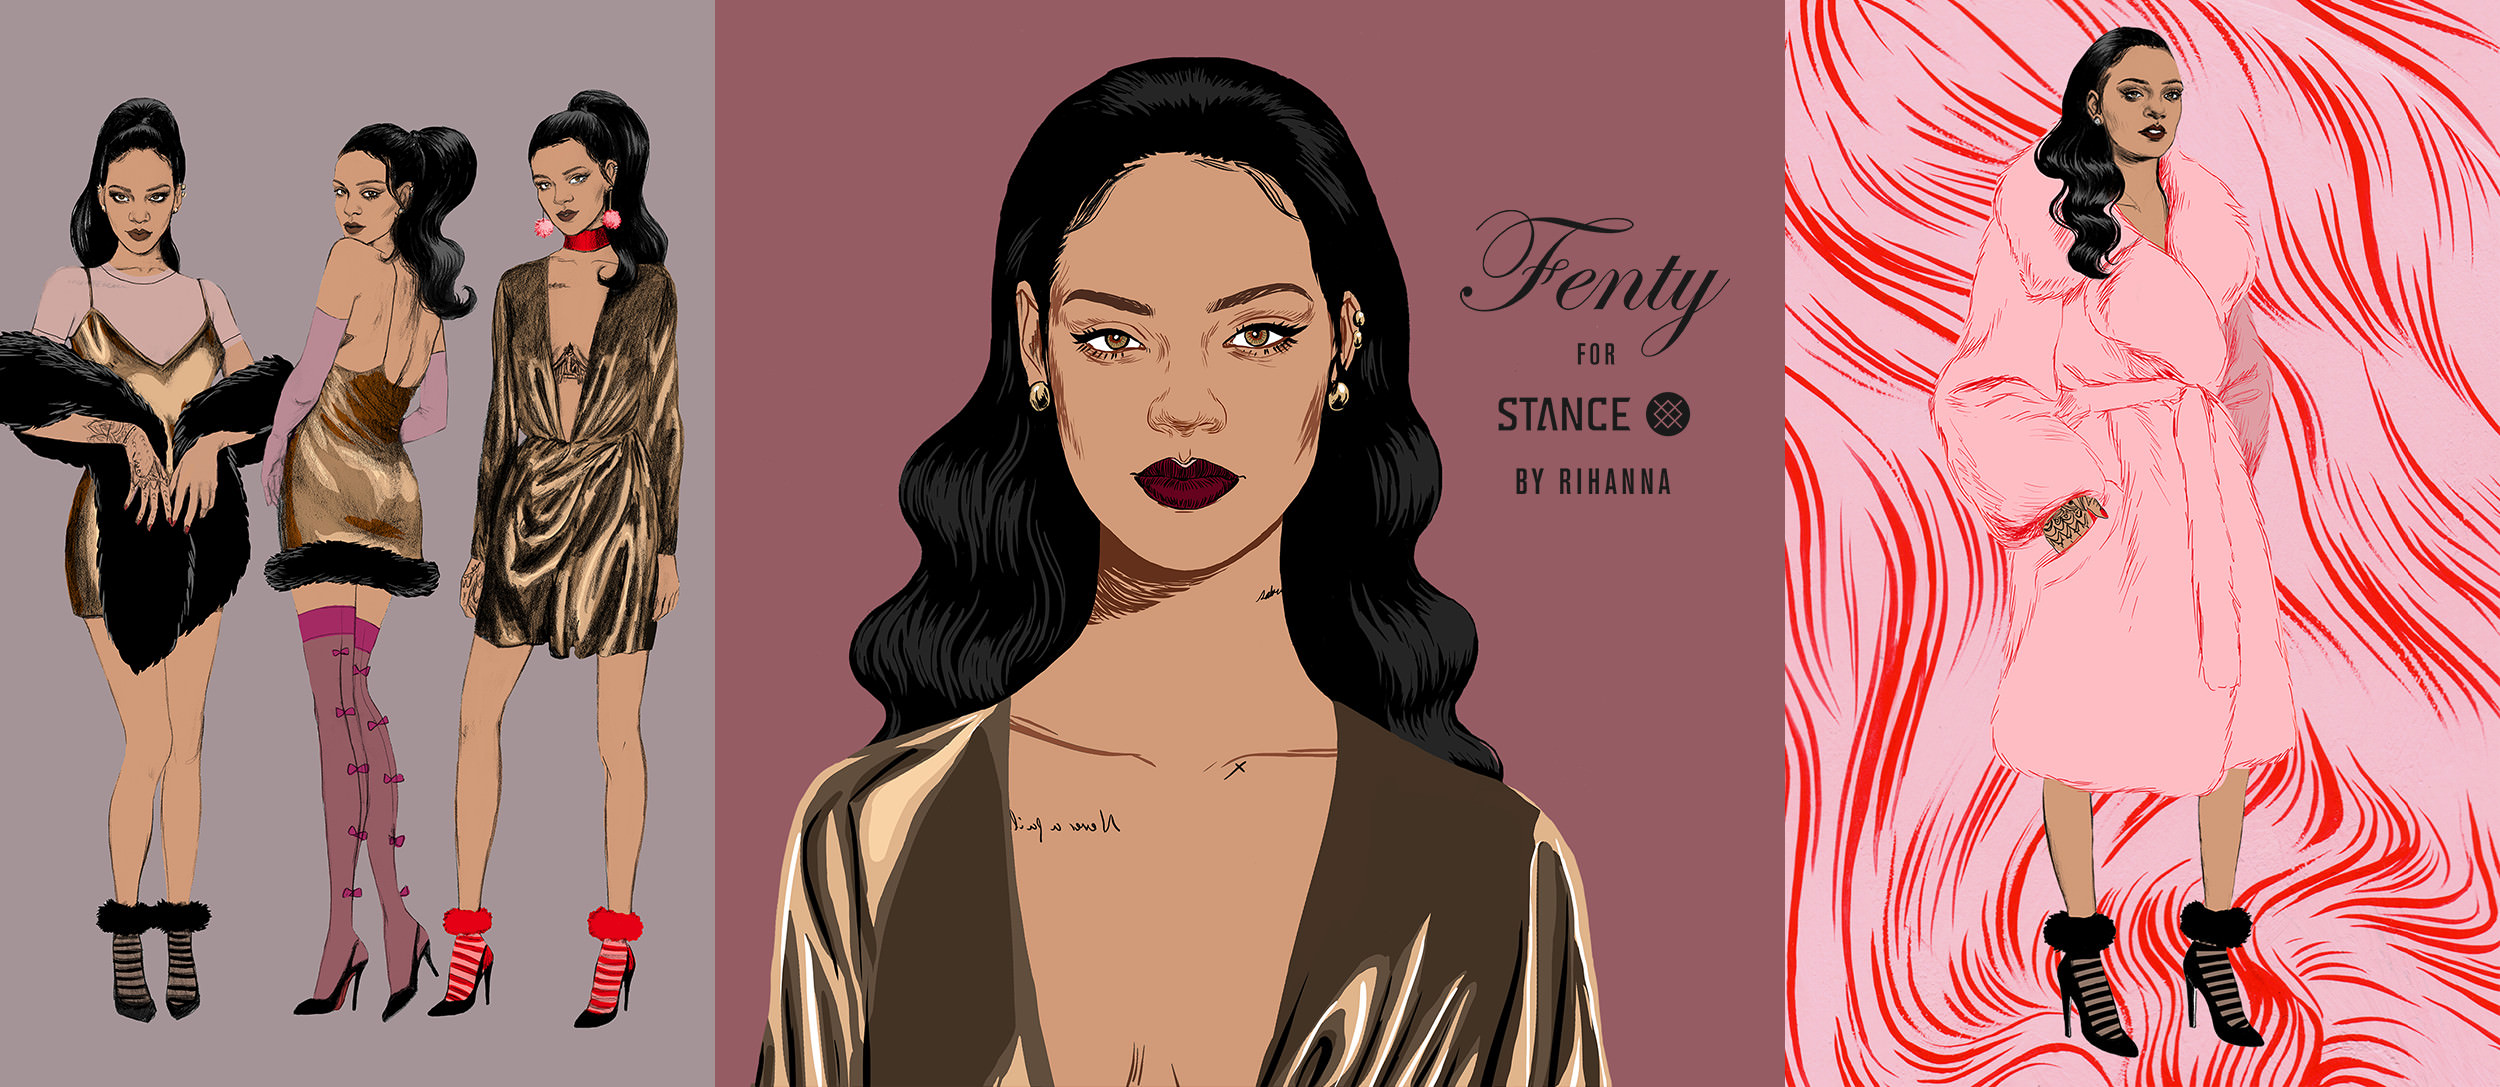 Rihanna Stance holiday sock collection 2016 banner